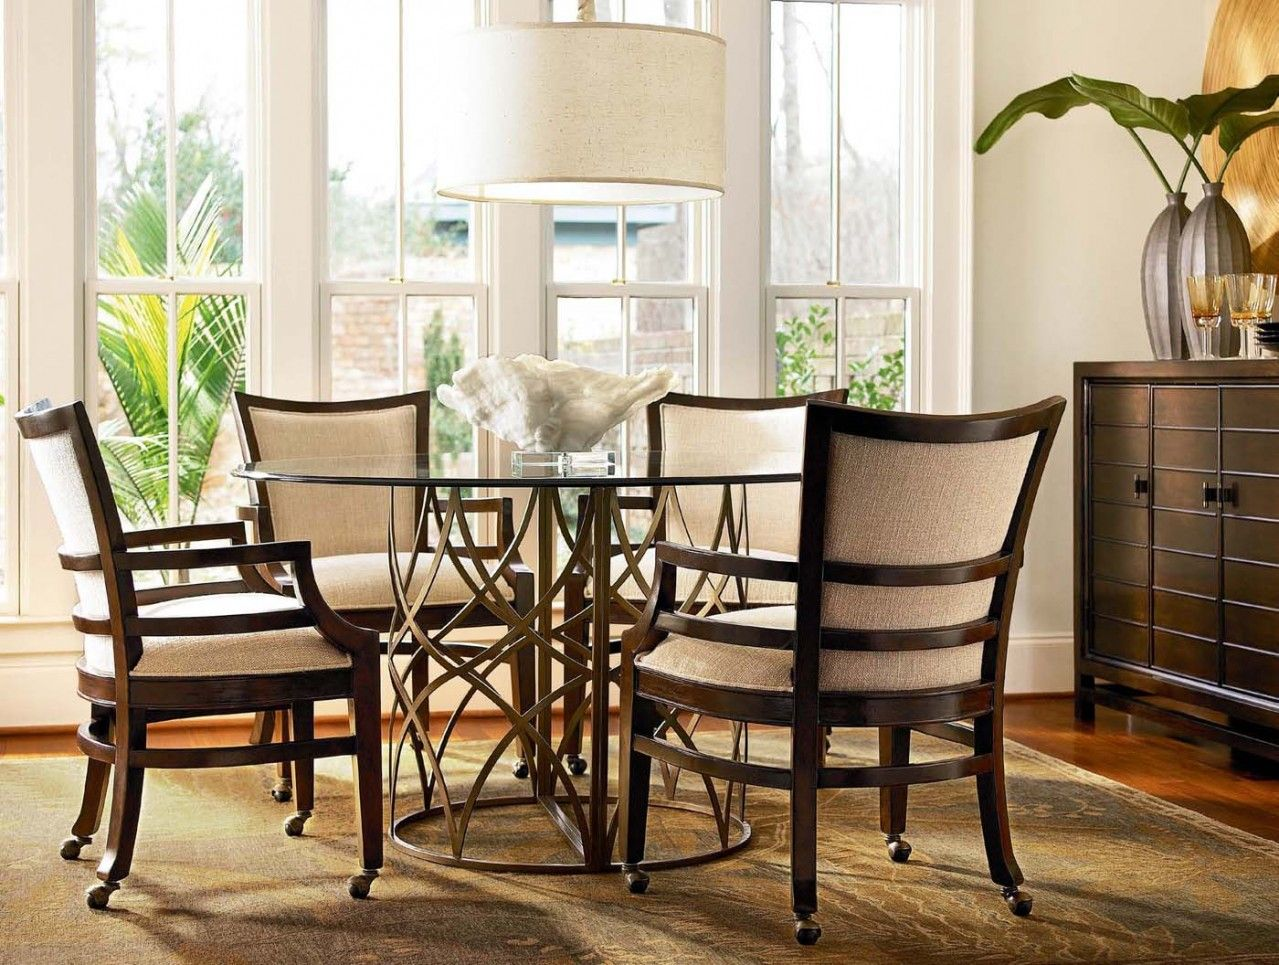 Glass dining room sets - Images About Dining Chairs On Casters On Pinterest Antique Living Rooms Wheels And Chairs